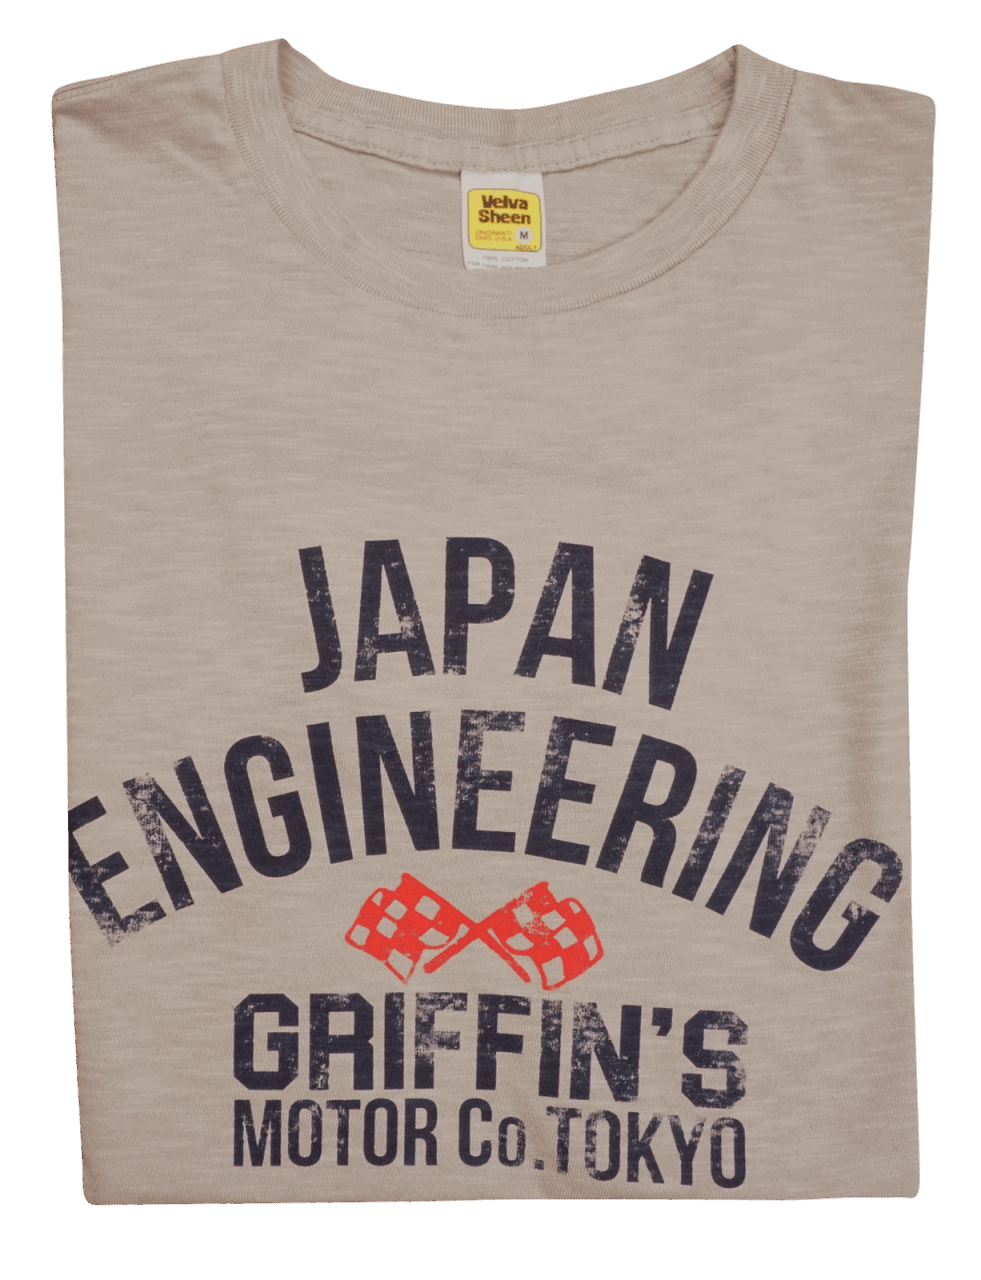 Velva Sheen Japan Engineering Tee Gray